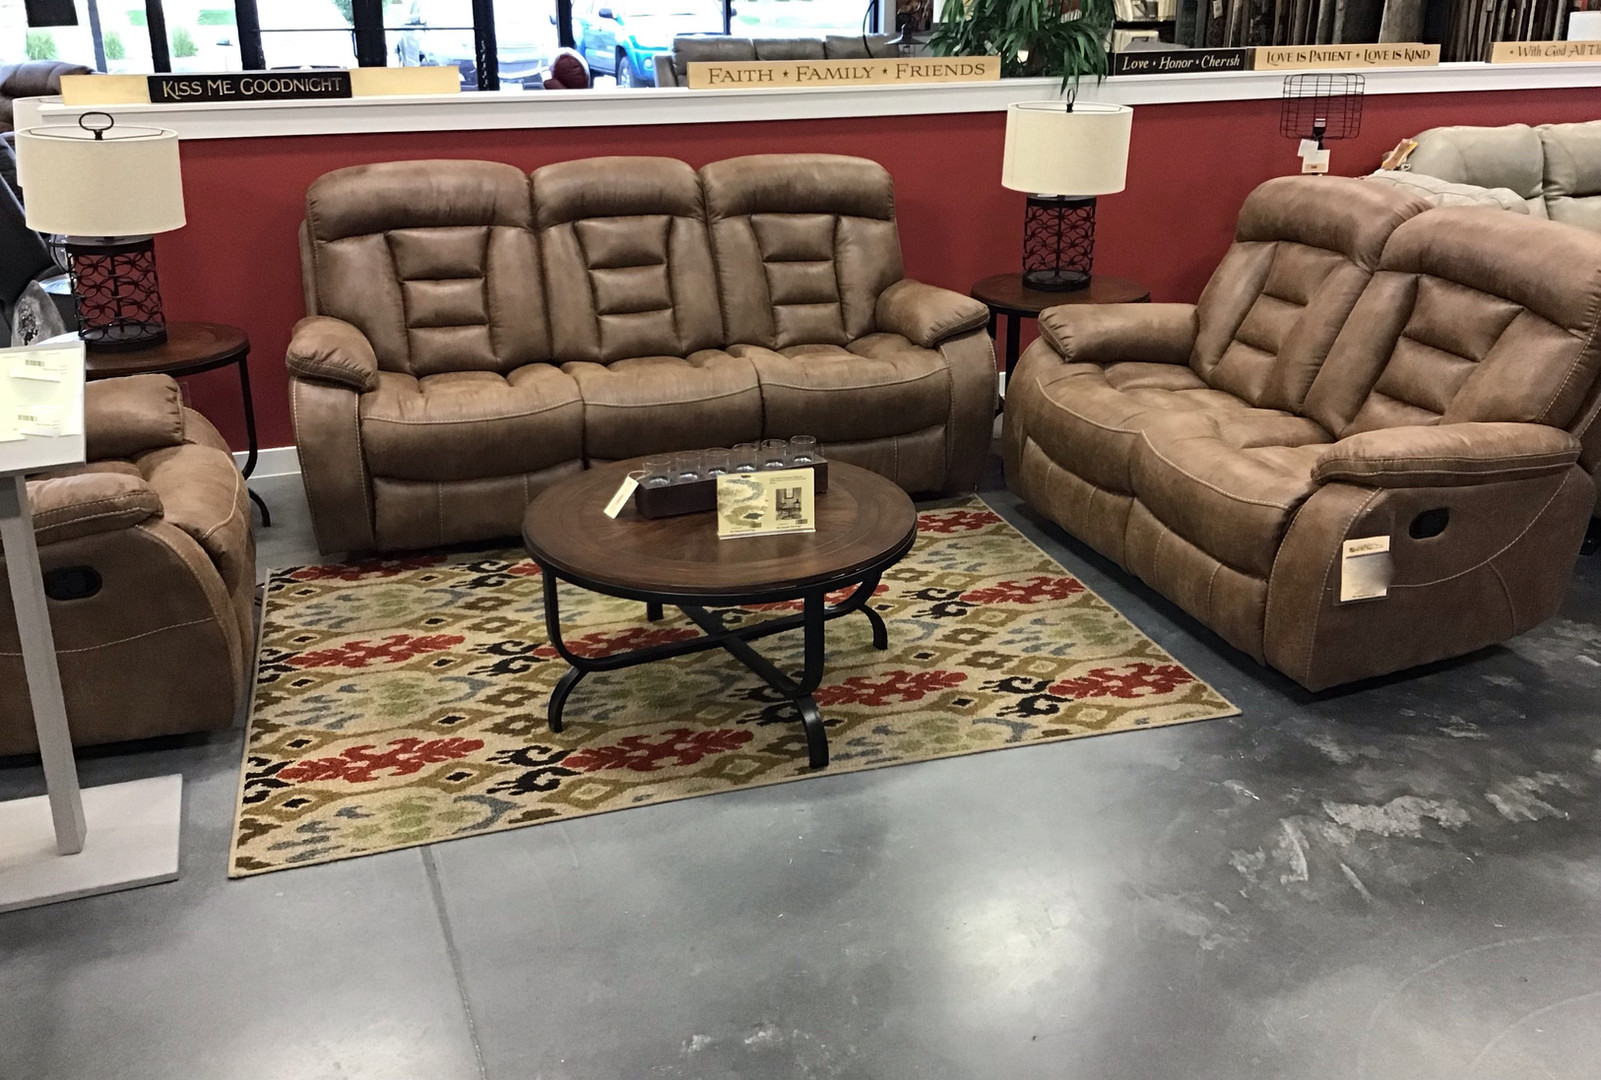 The Infinity 3 pc reclining set